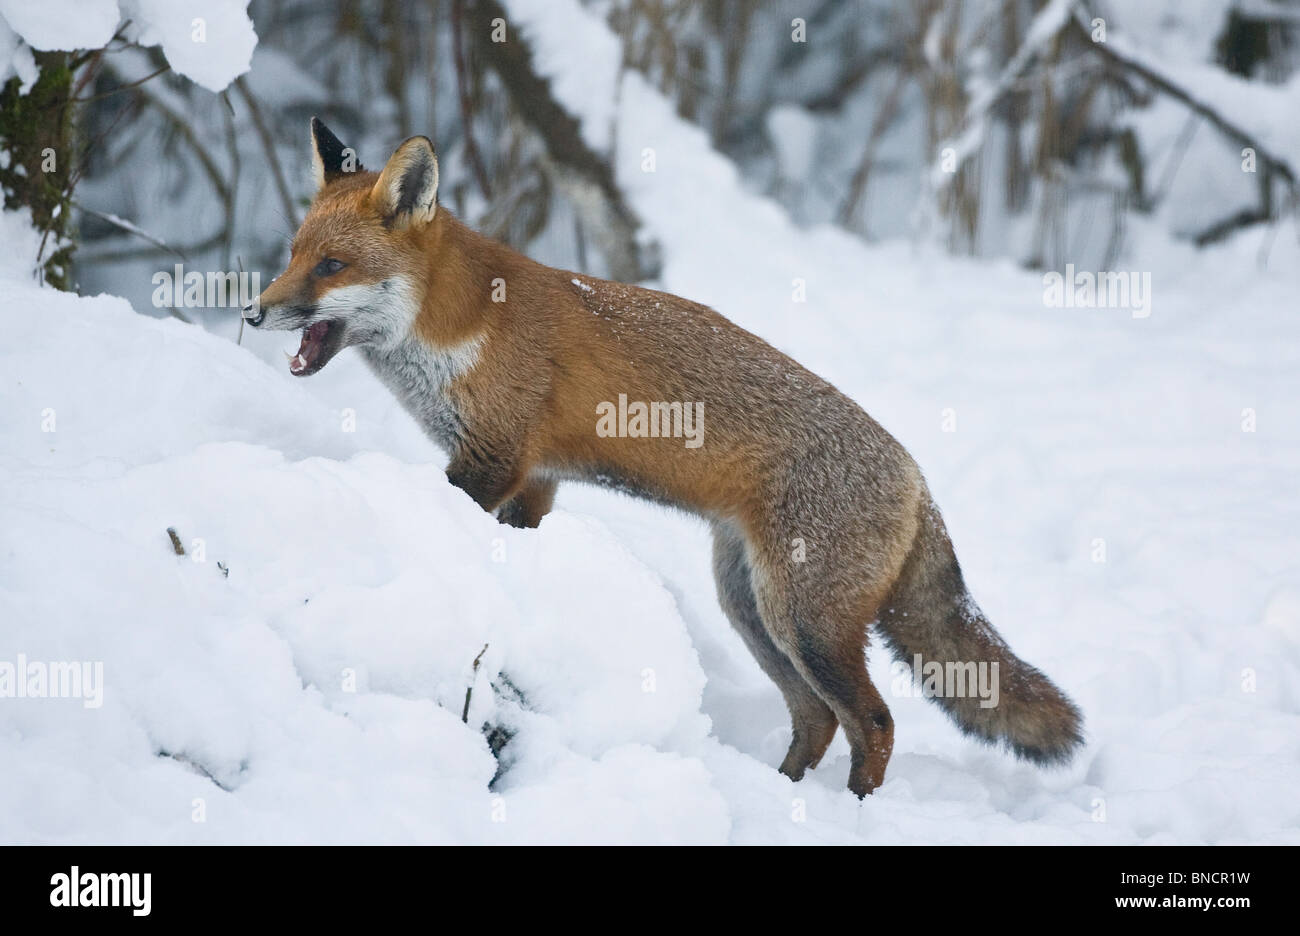 Snarling Red Fox Vulpes vulpes looking for food in snow during winter - Stock Image